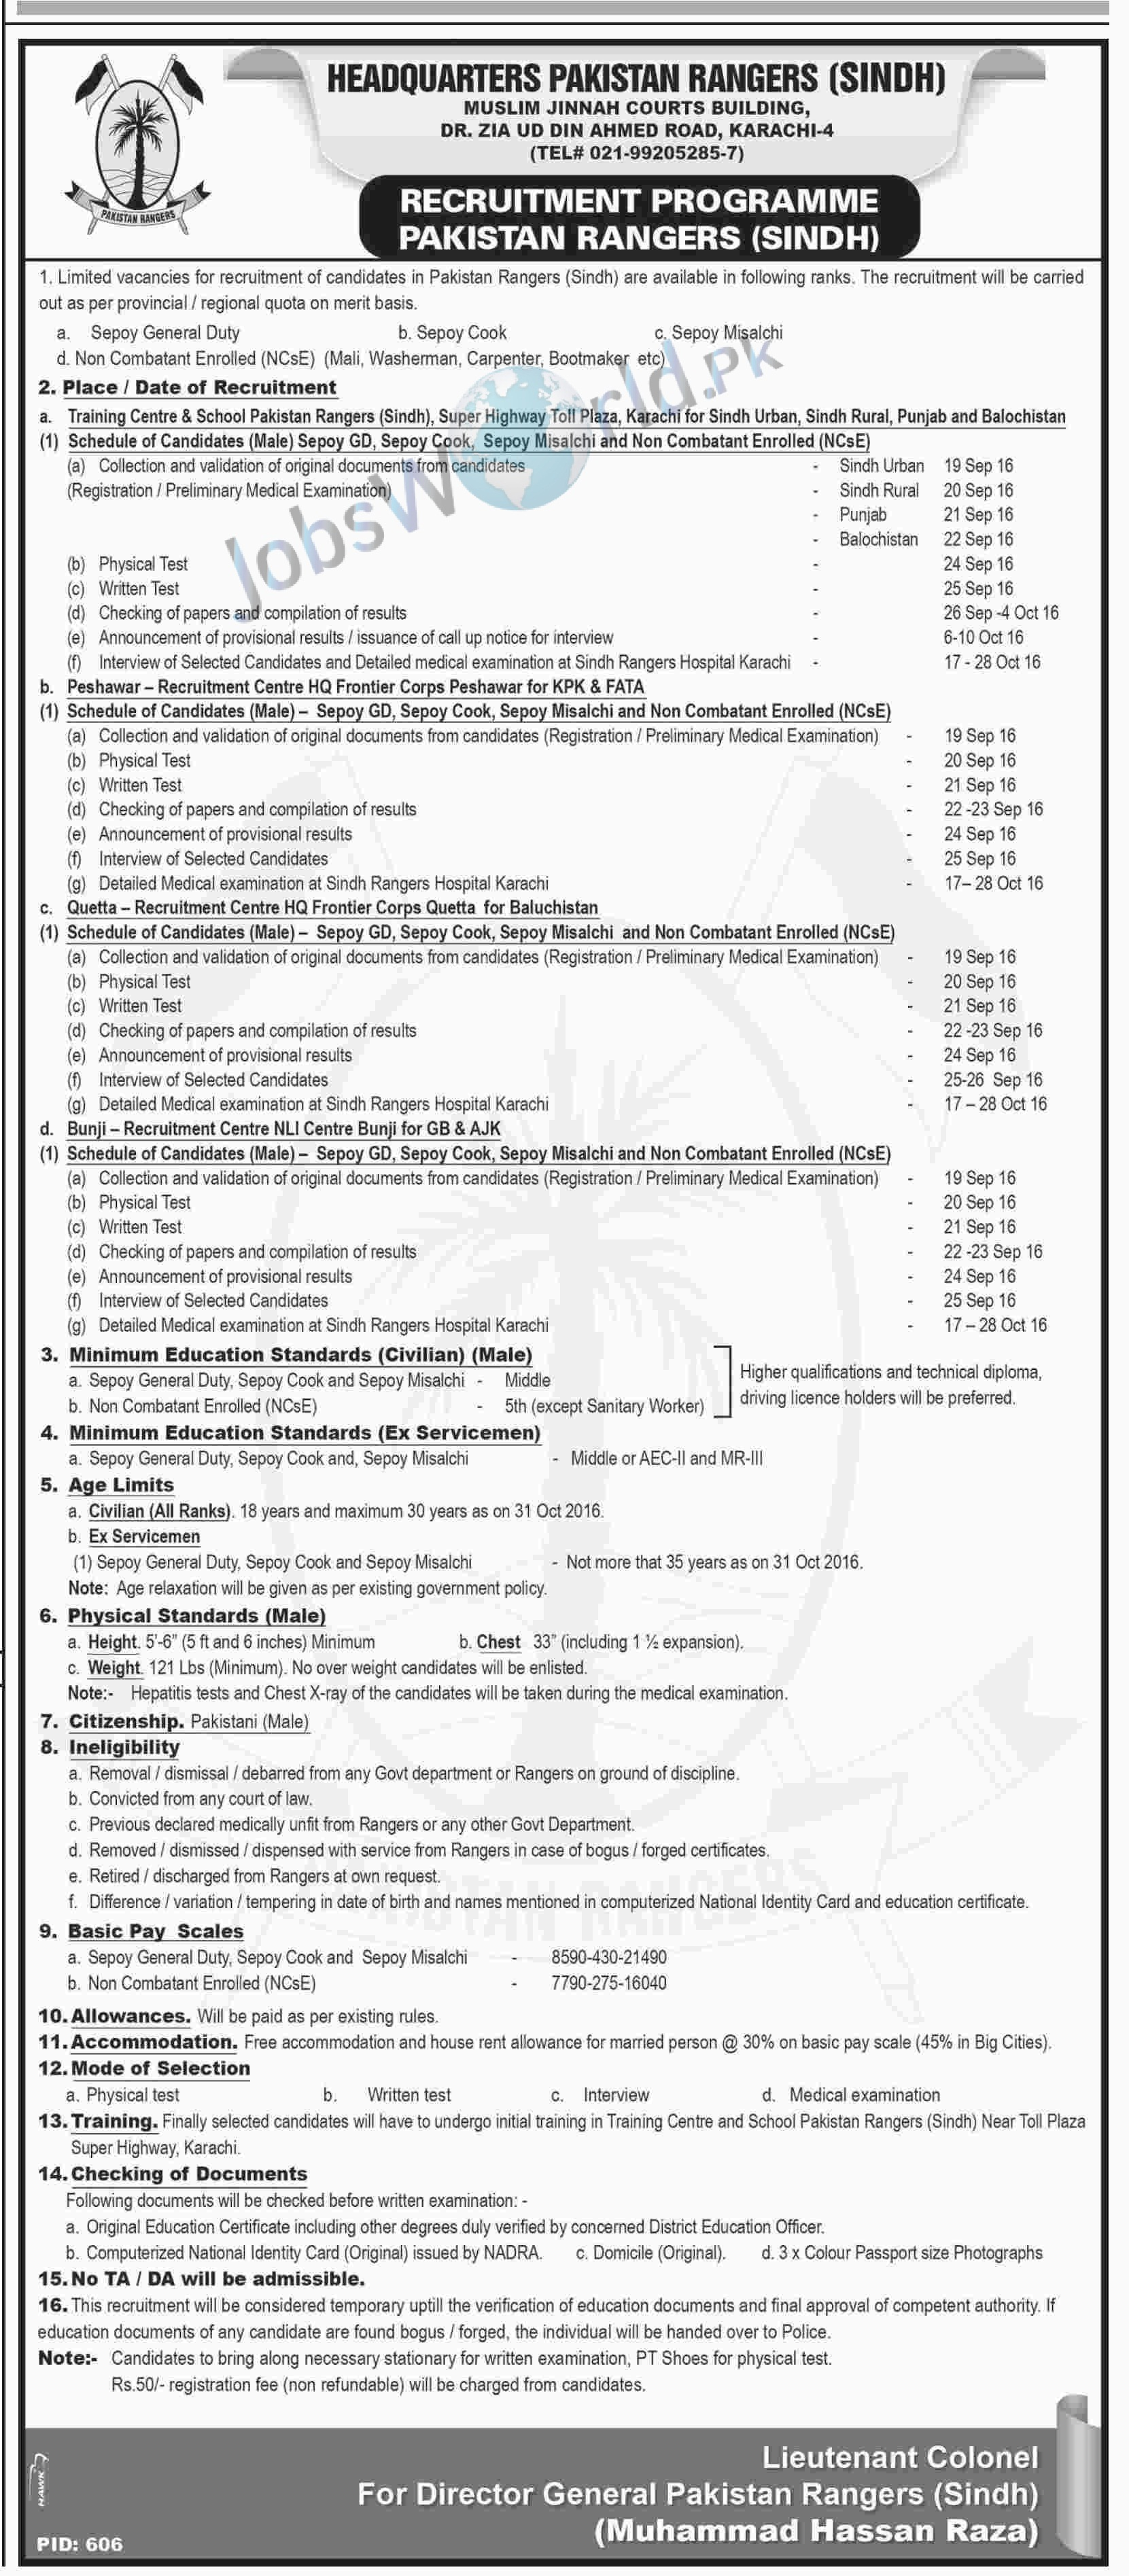 Sindh RANGERS Jobs 2016 In Pakistan Latest Recruitment For